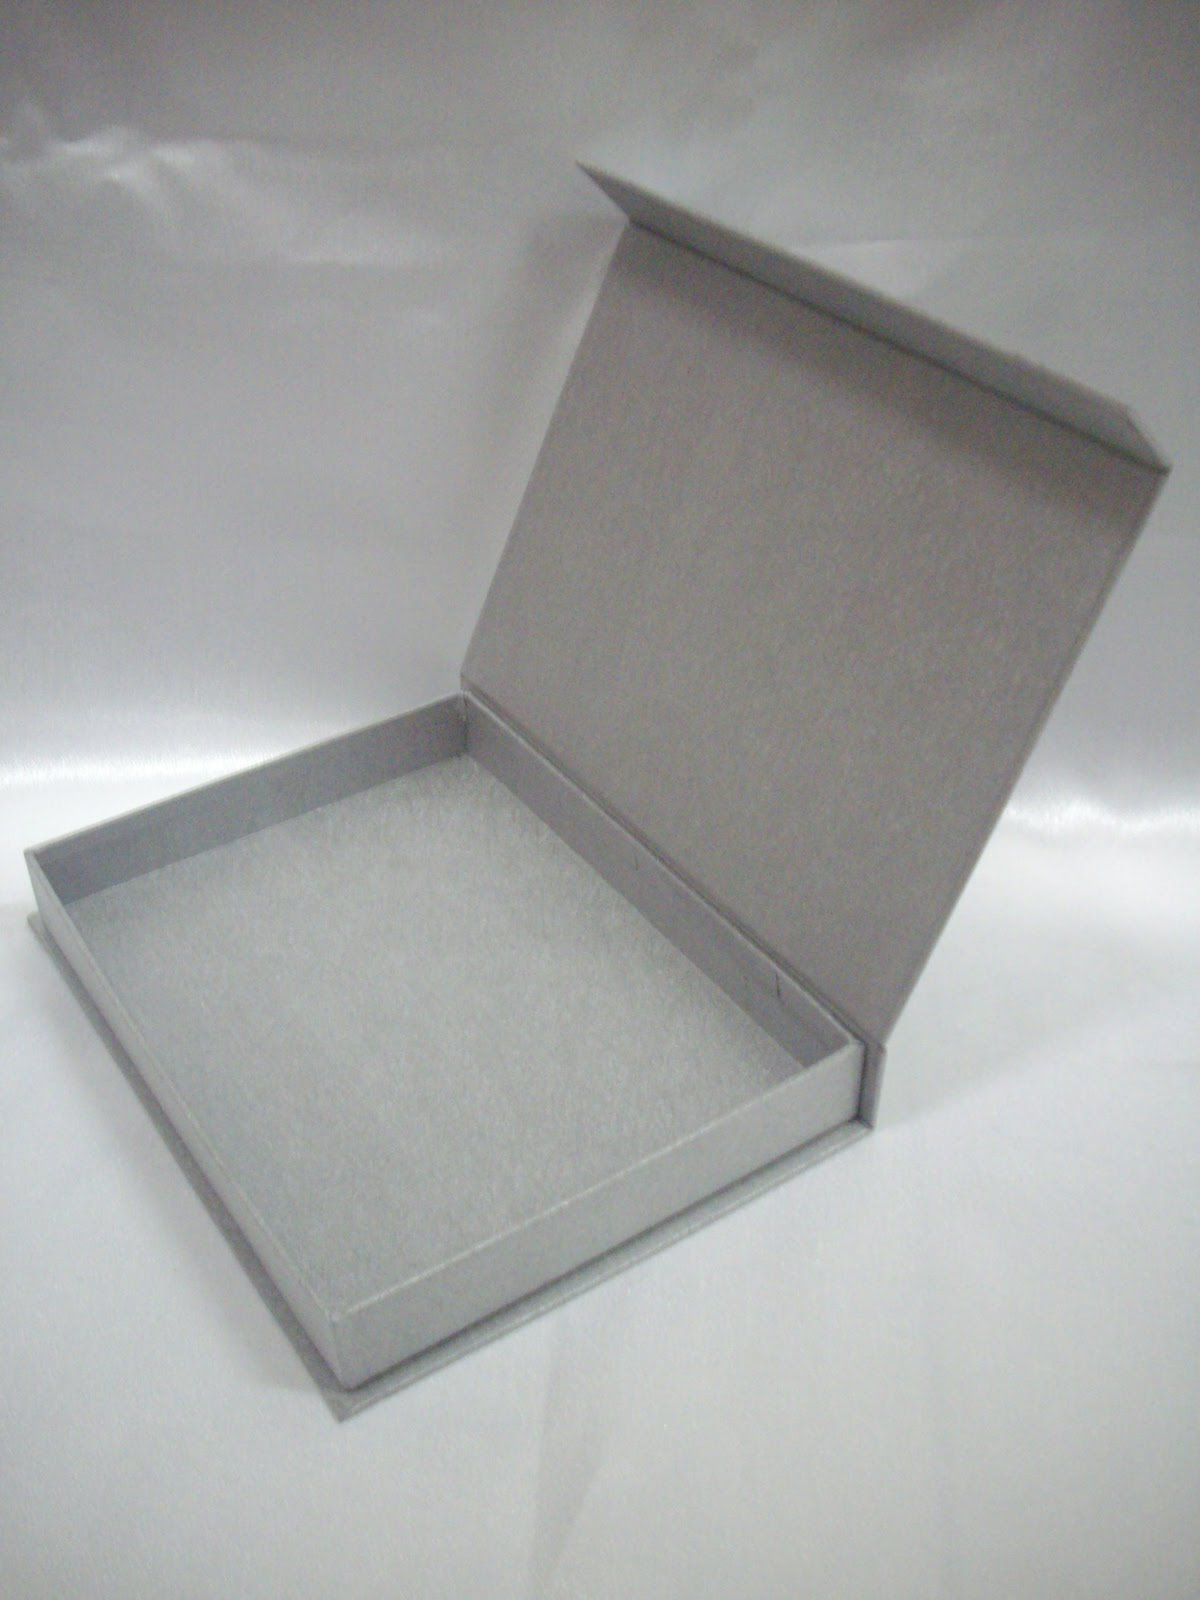 Singapore Gift Boxes: Gift box for presenting a photo ...